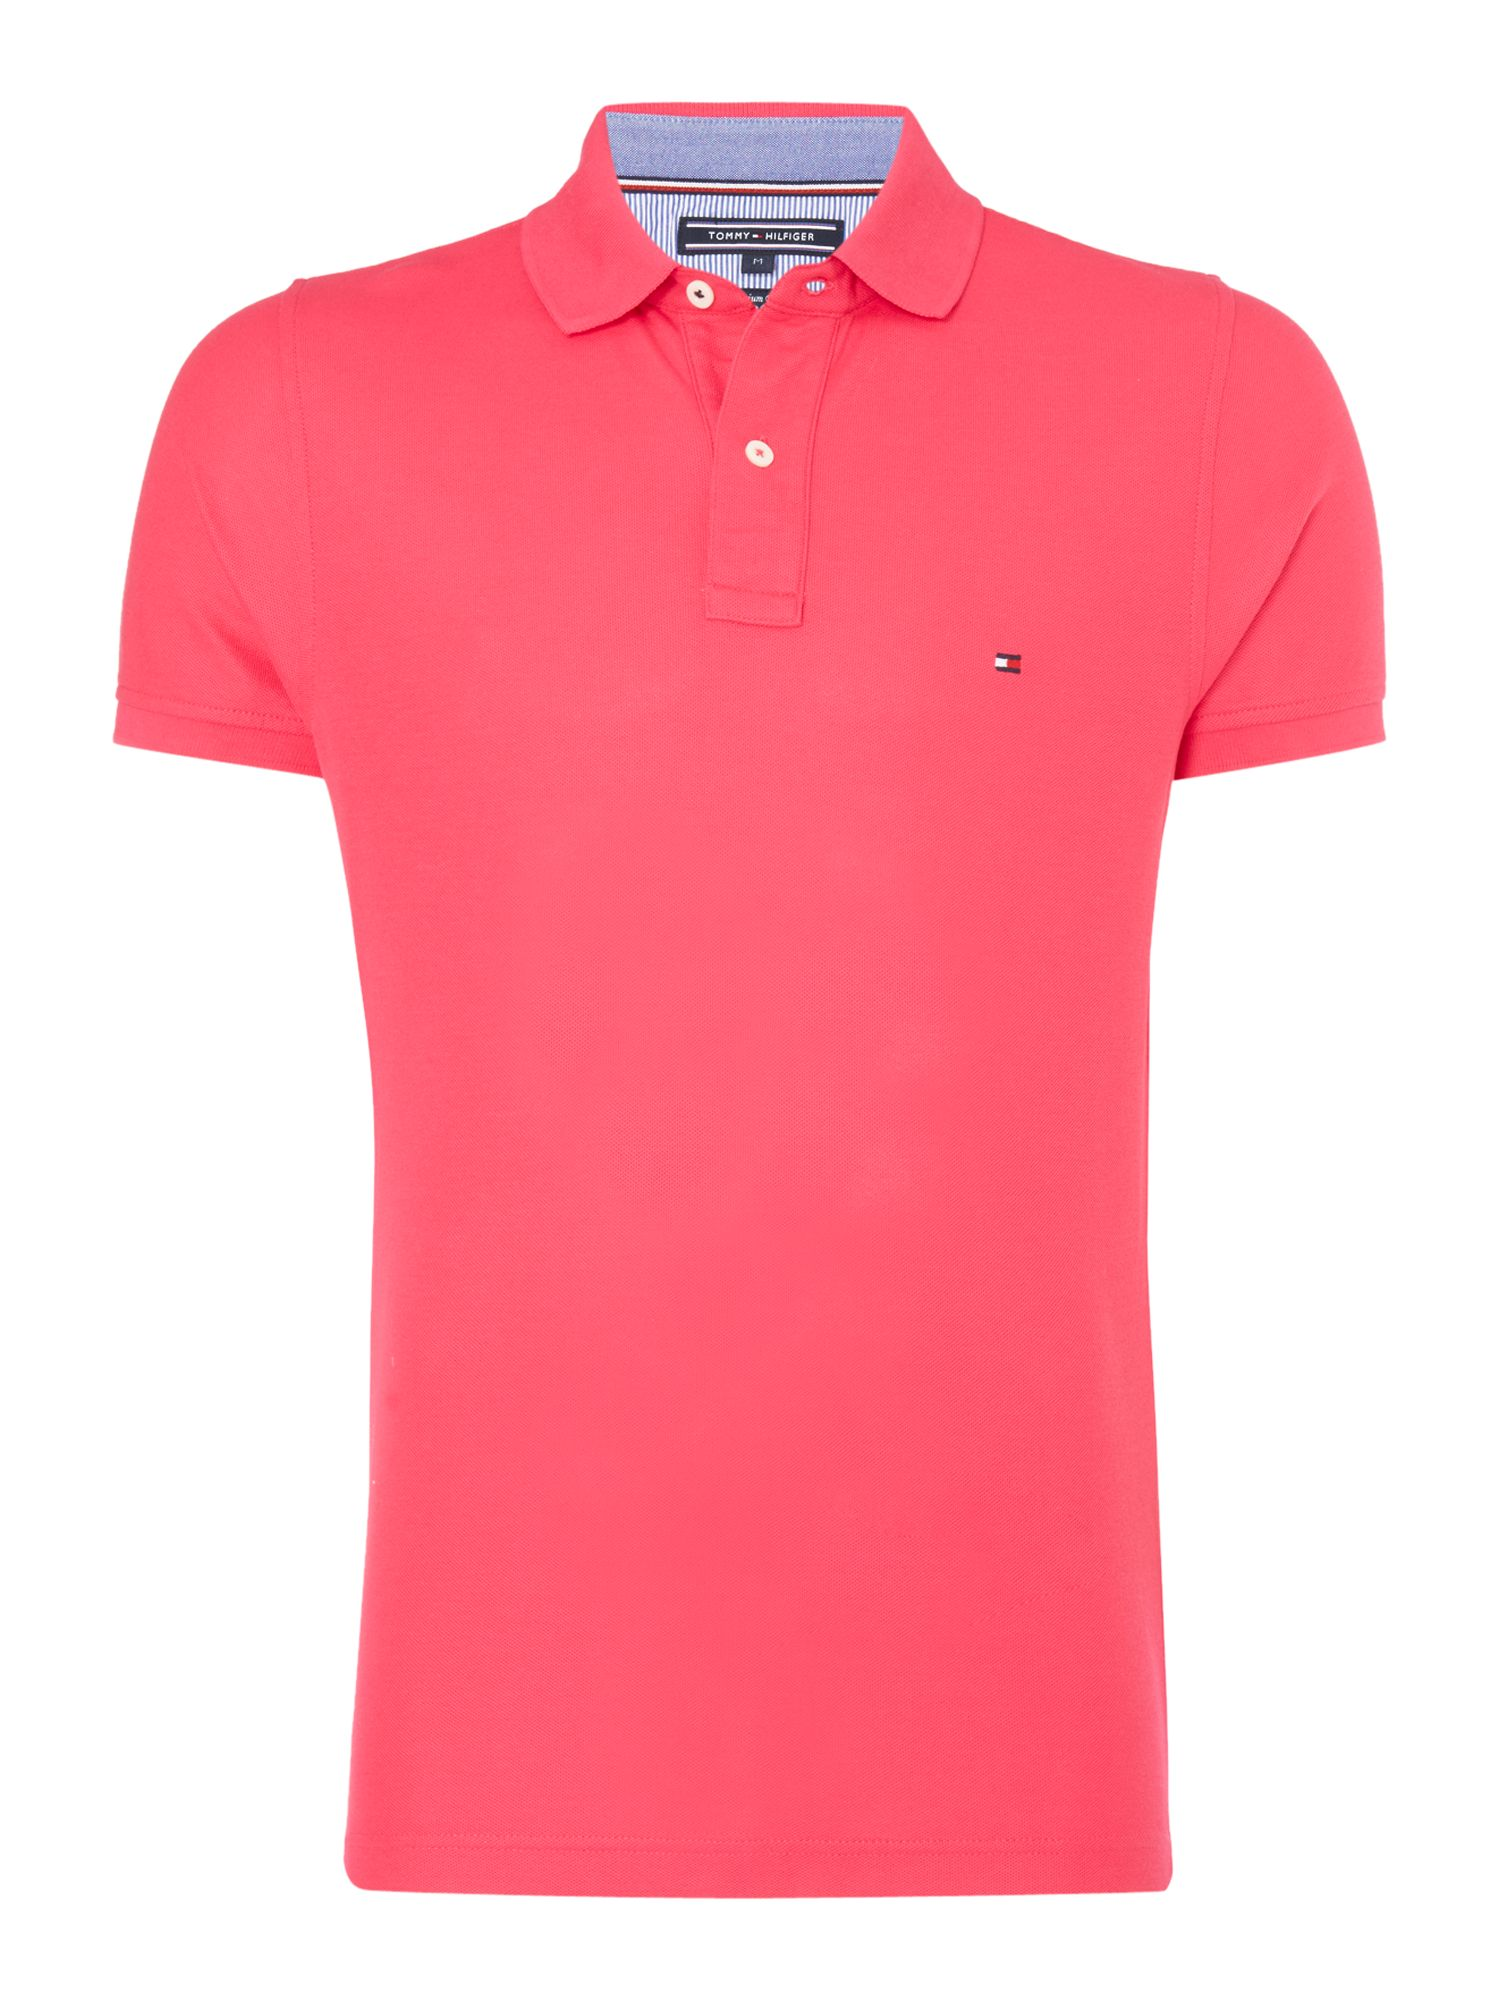 Men's Tommy Hilfiger Performance polo top, Pink